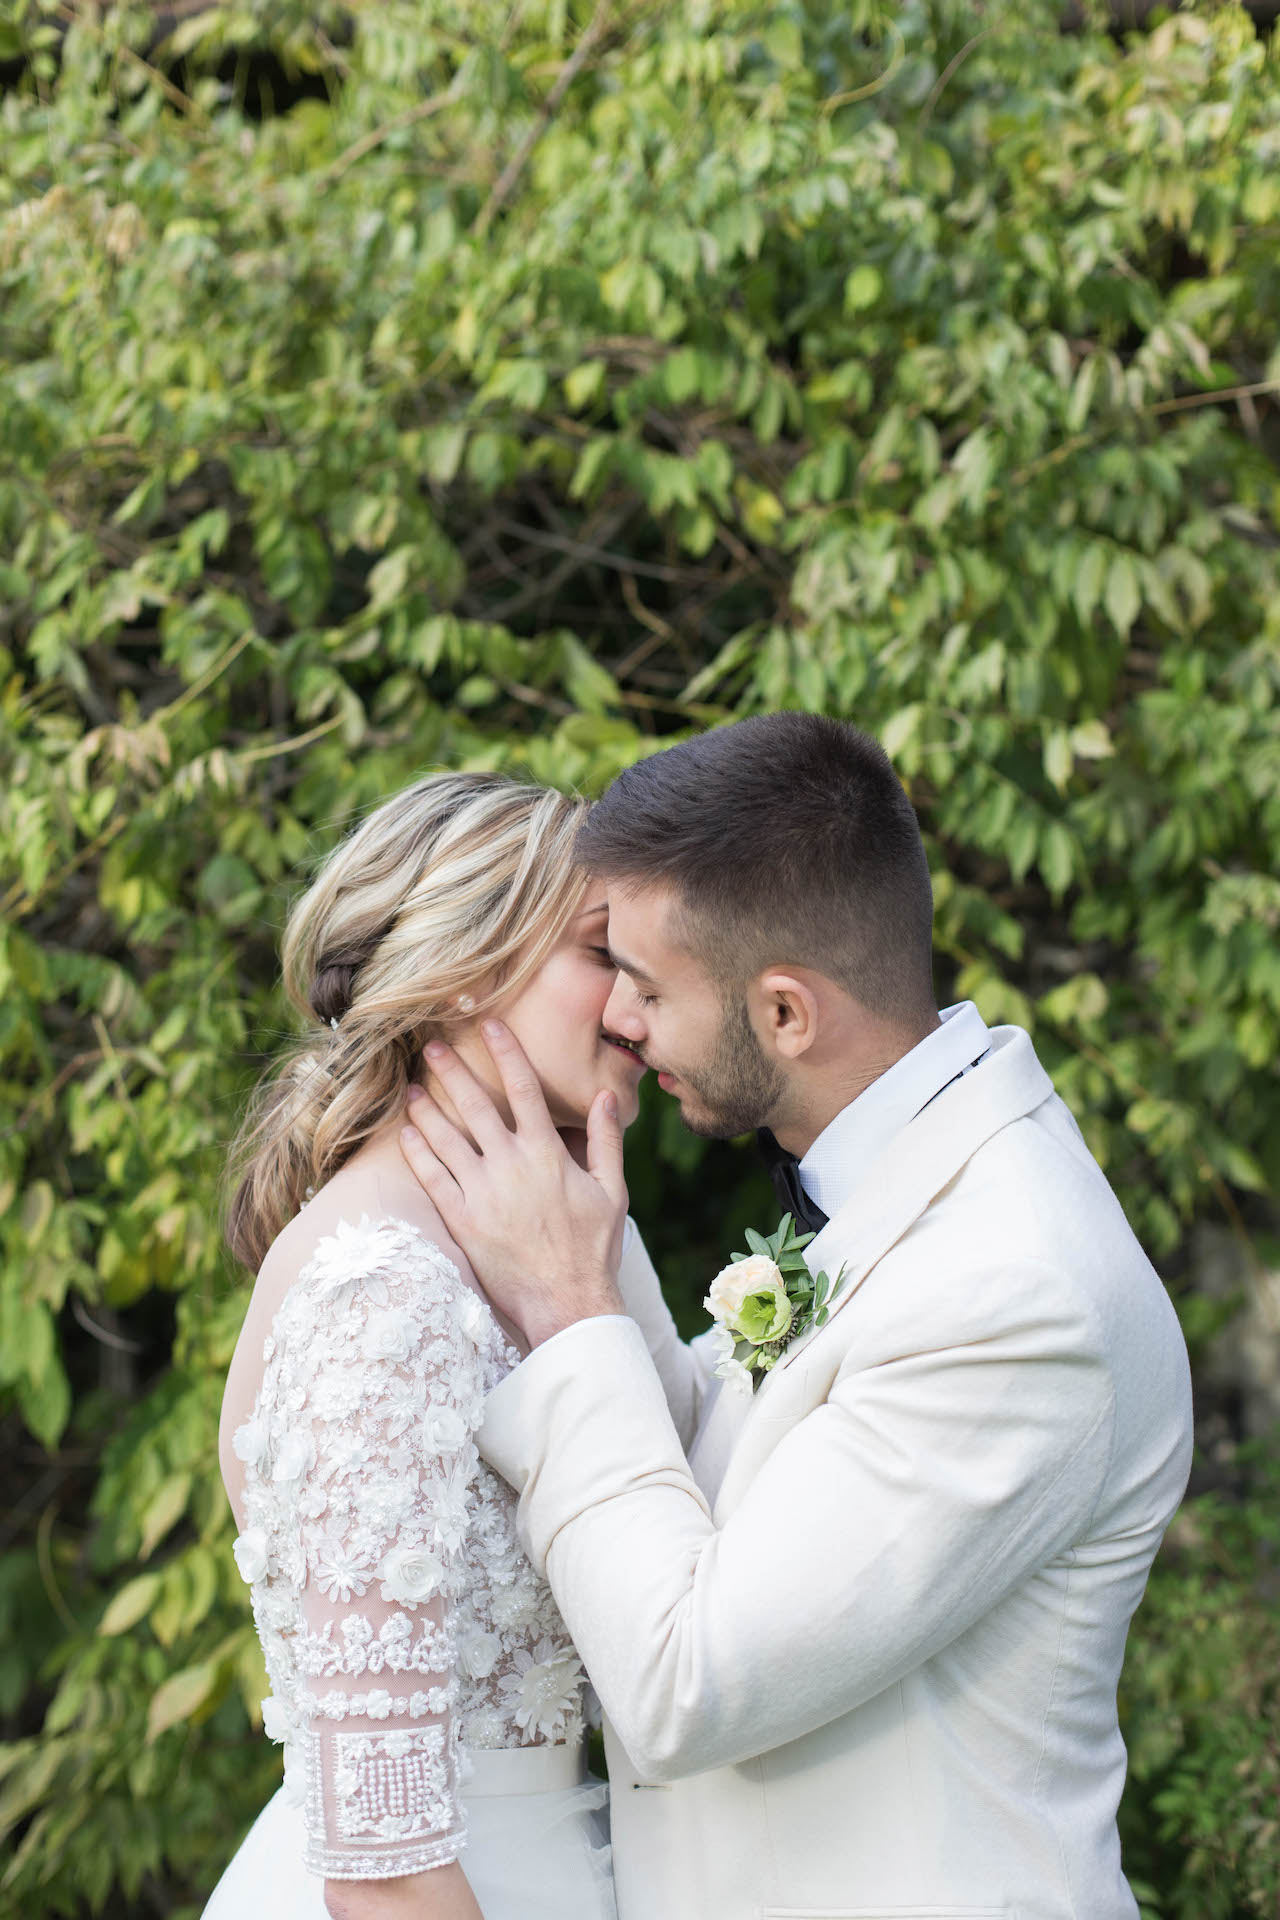 bride and groom about to kiss after wedding ceremony